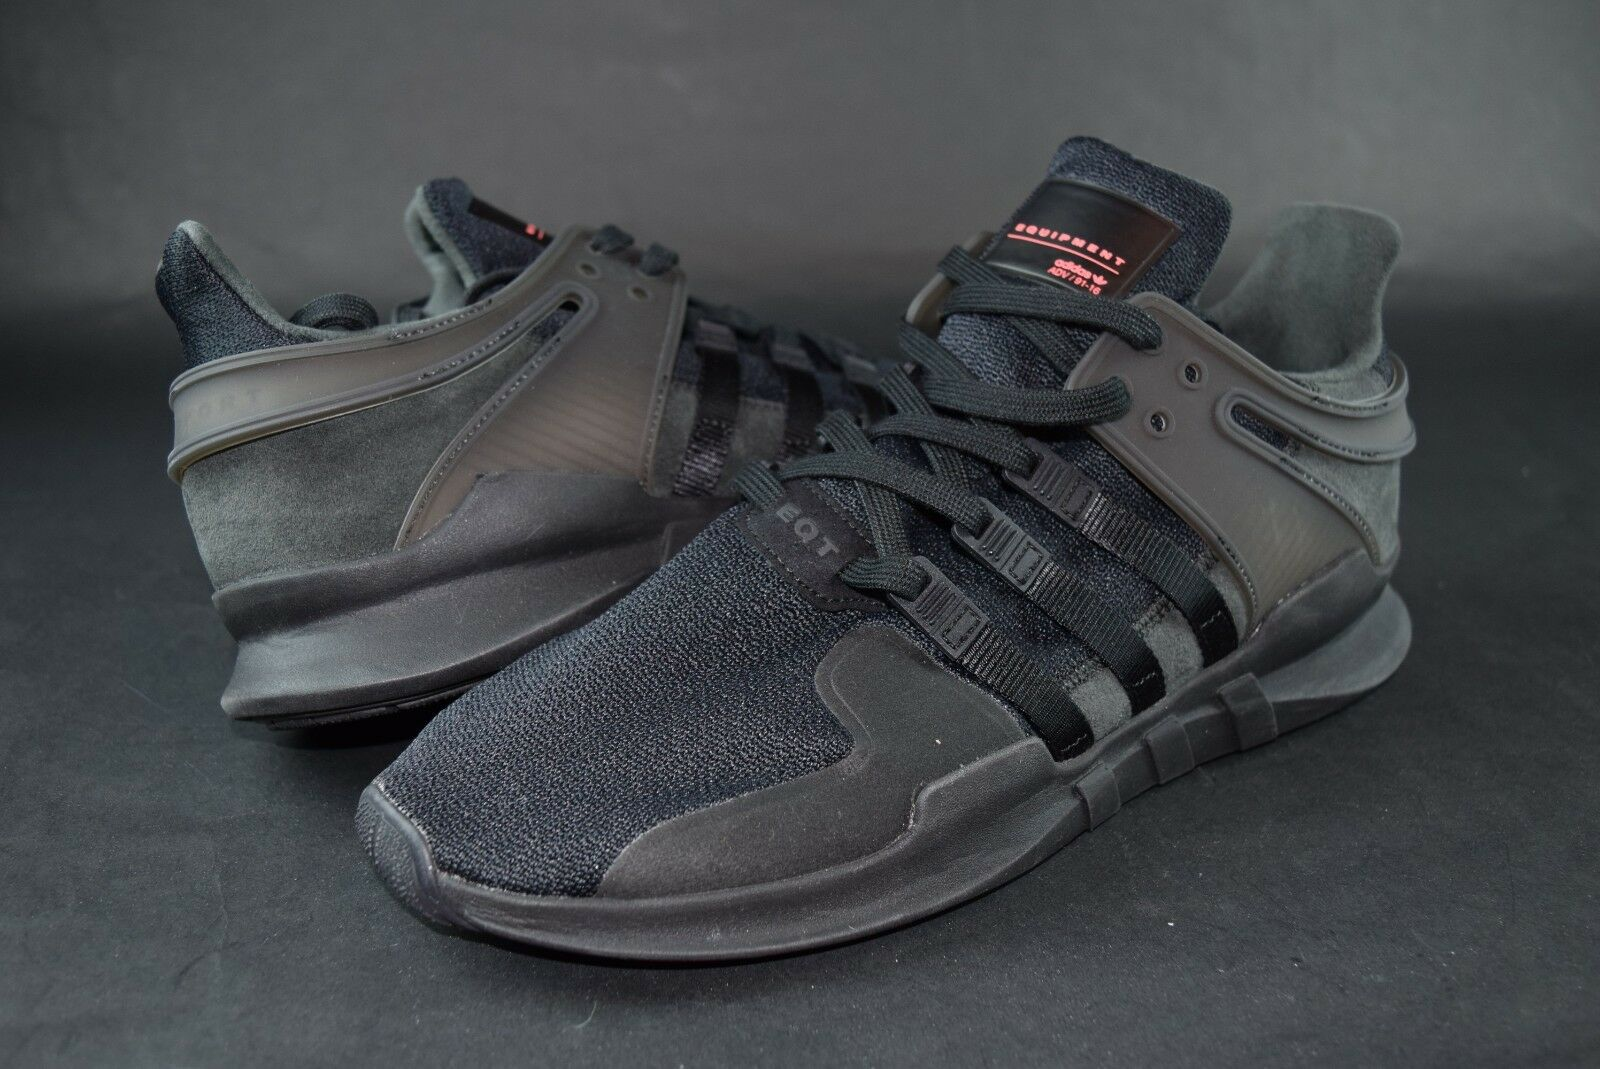 New Mens Adidas EQT Support ADV 91-16 sz 13 Black Sneakers shoes Ortholite